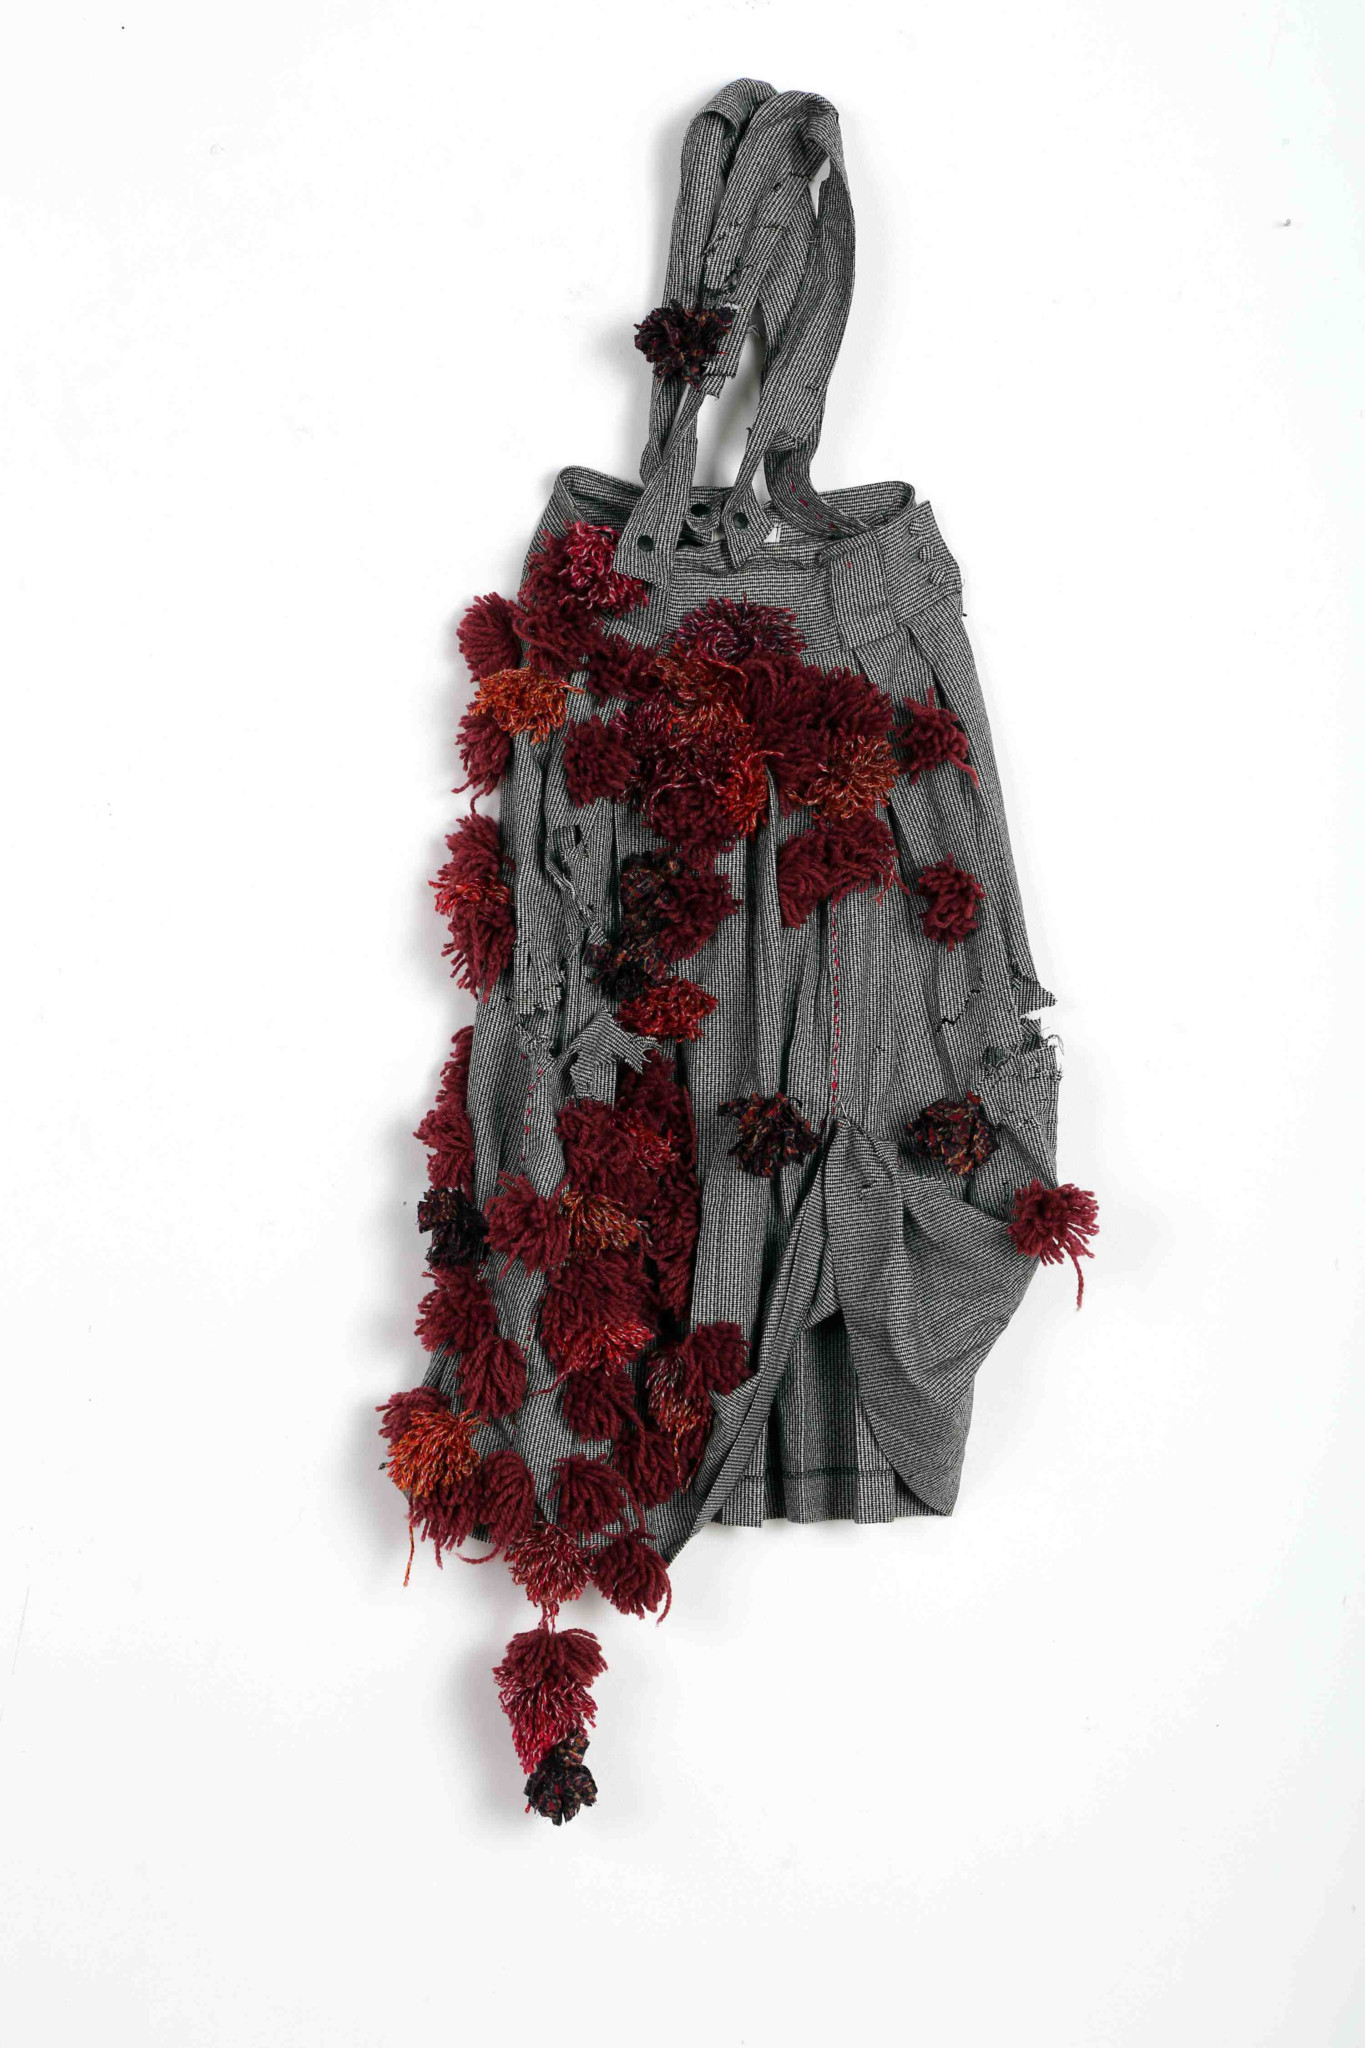 Georgina Maxim, 'Sex in the Bushes', 2014, Mixed Media 134 x 66 cm, Courtesy of Village Unhu